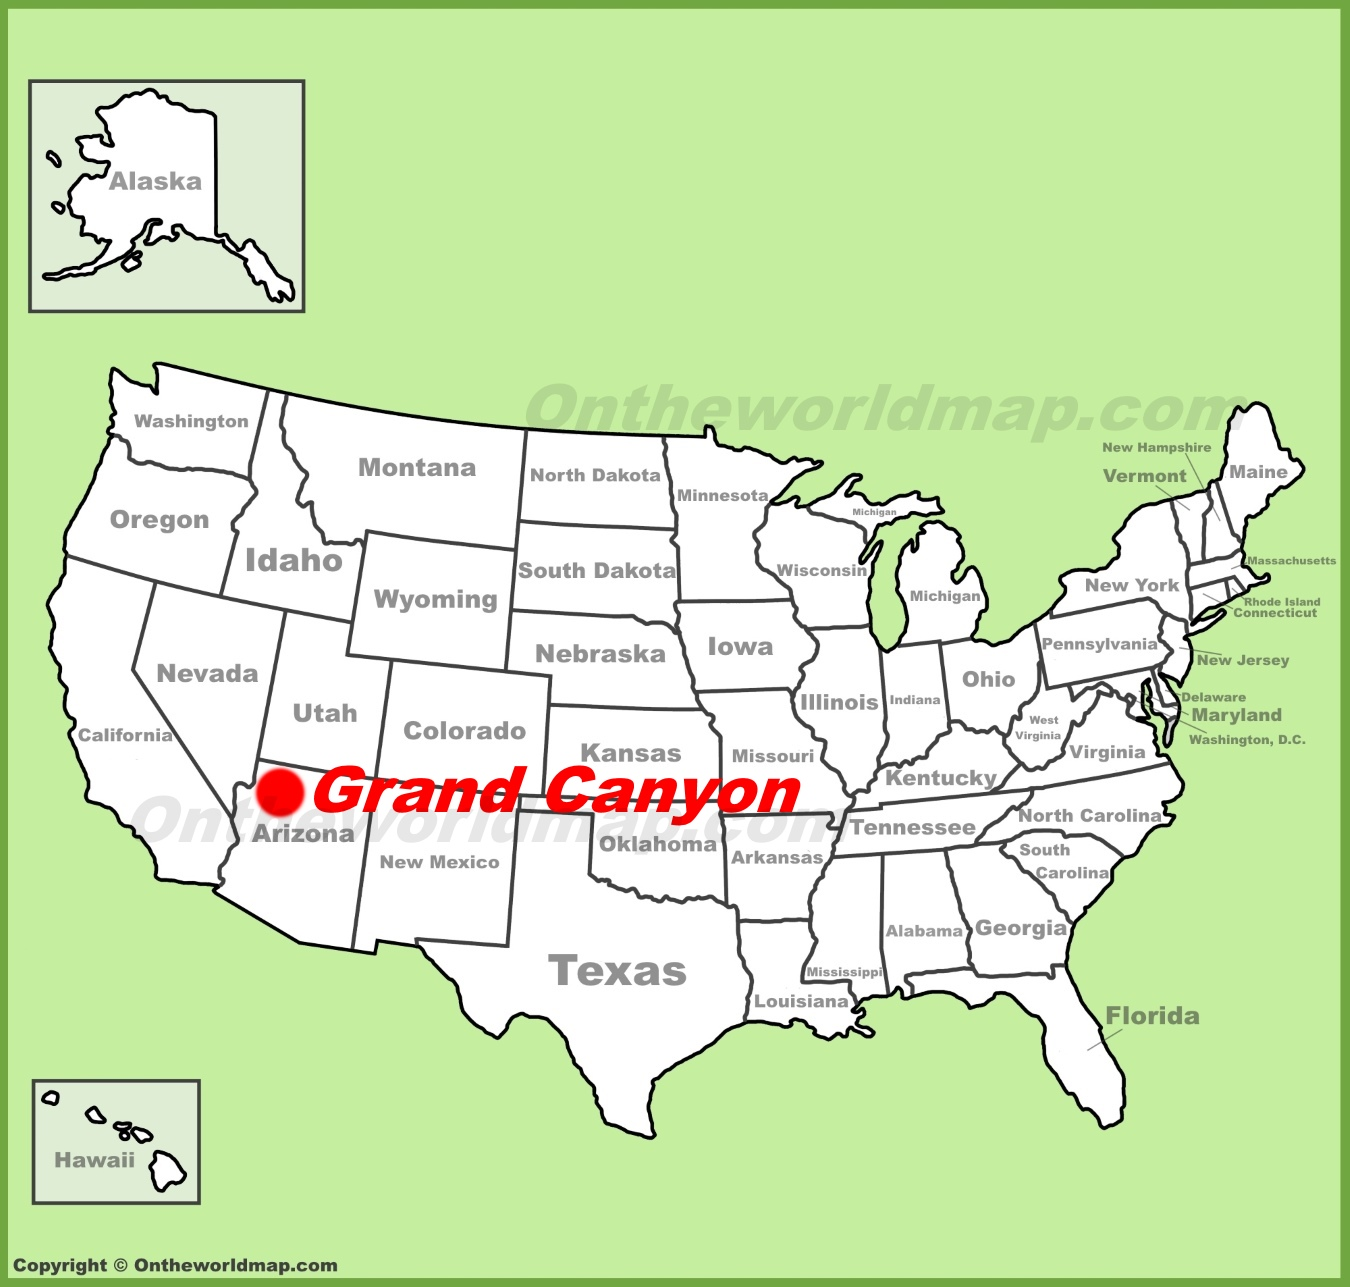 Grand Canyon Location On The U S Map